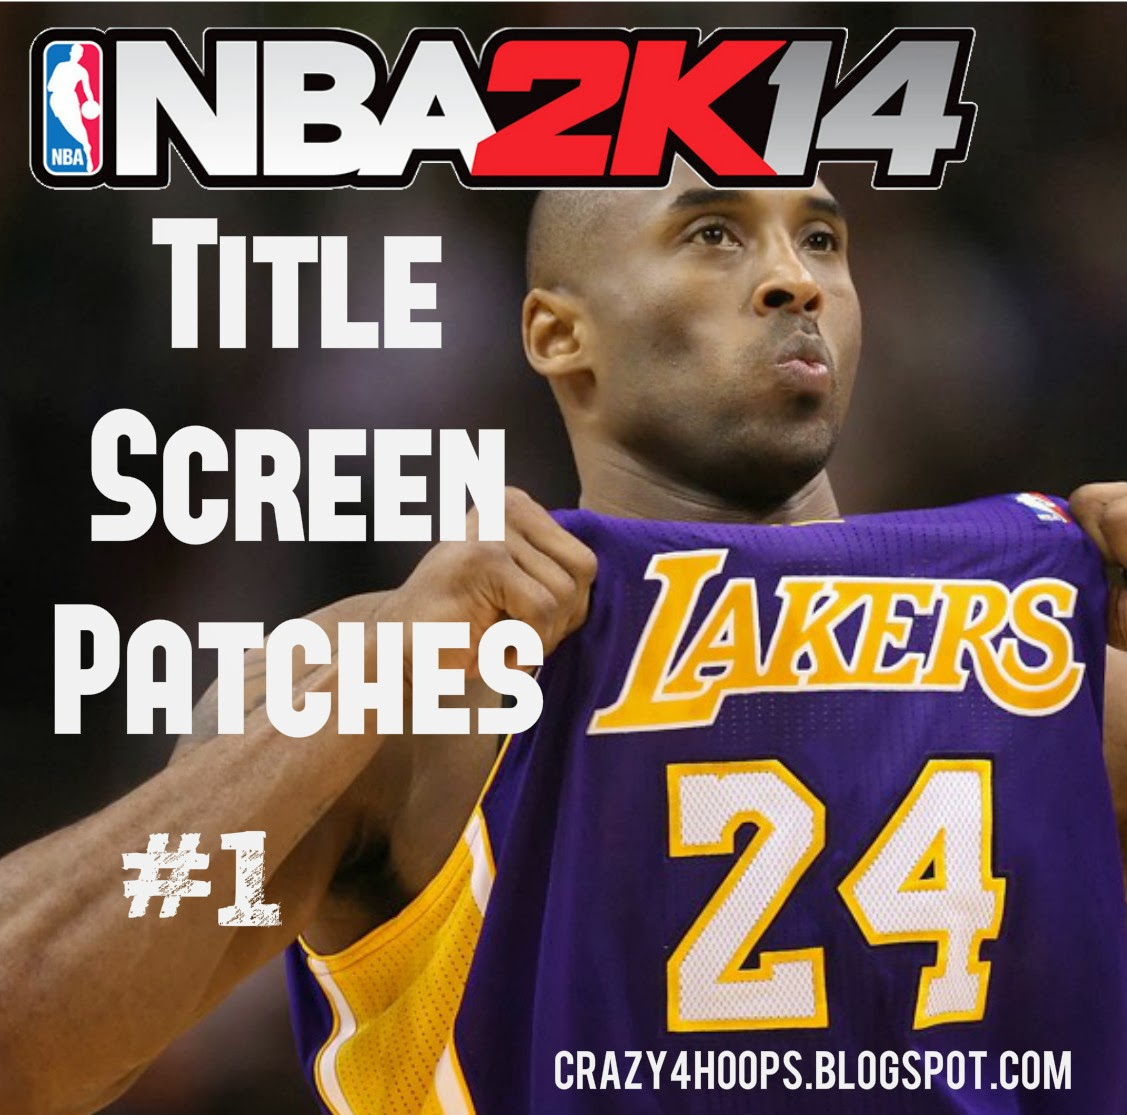 NBA 2k14 Title Screen Patches Download #1